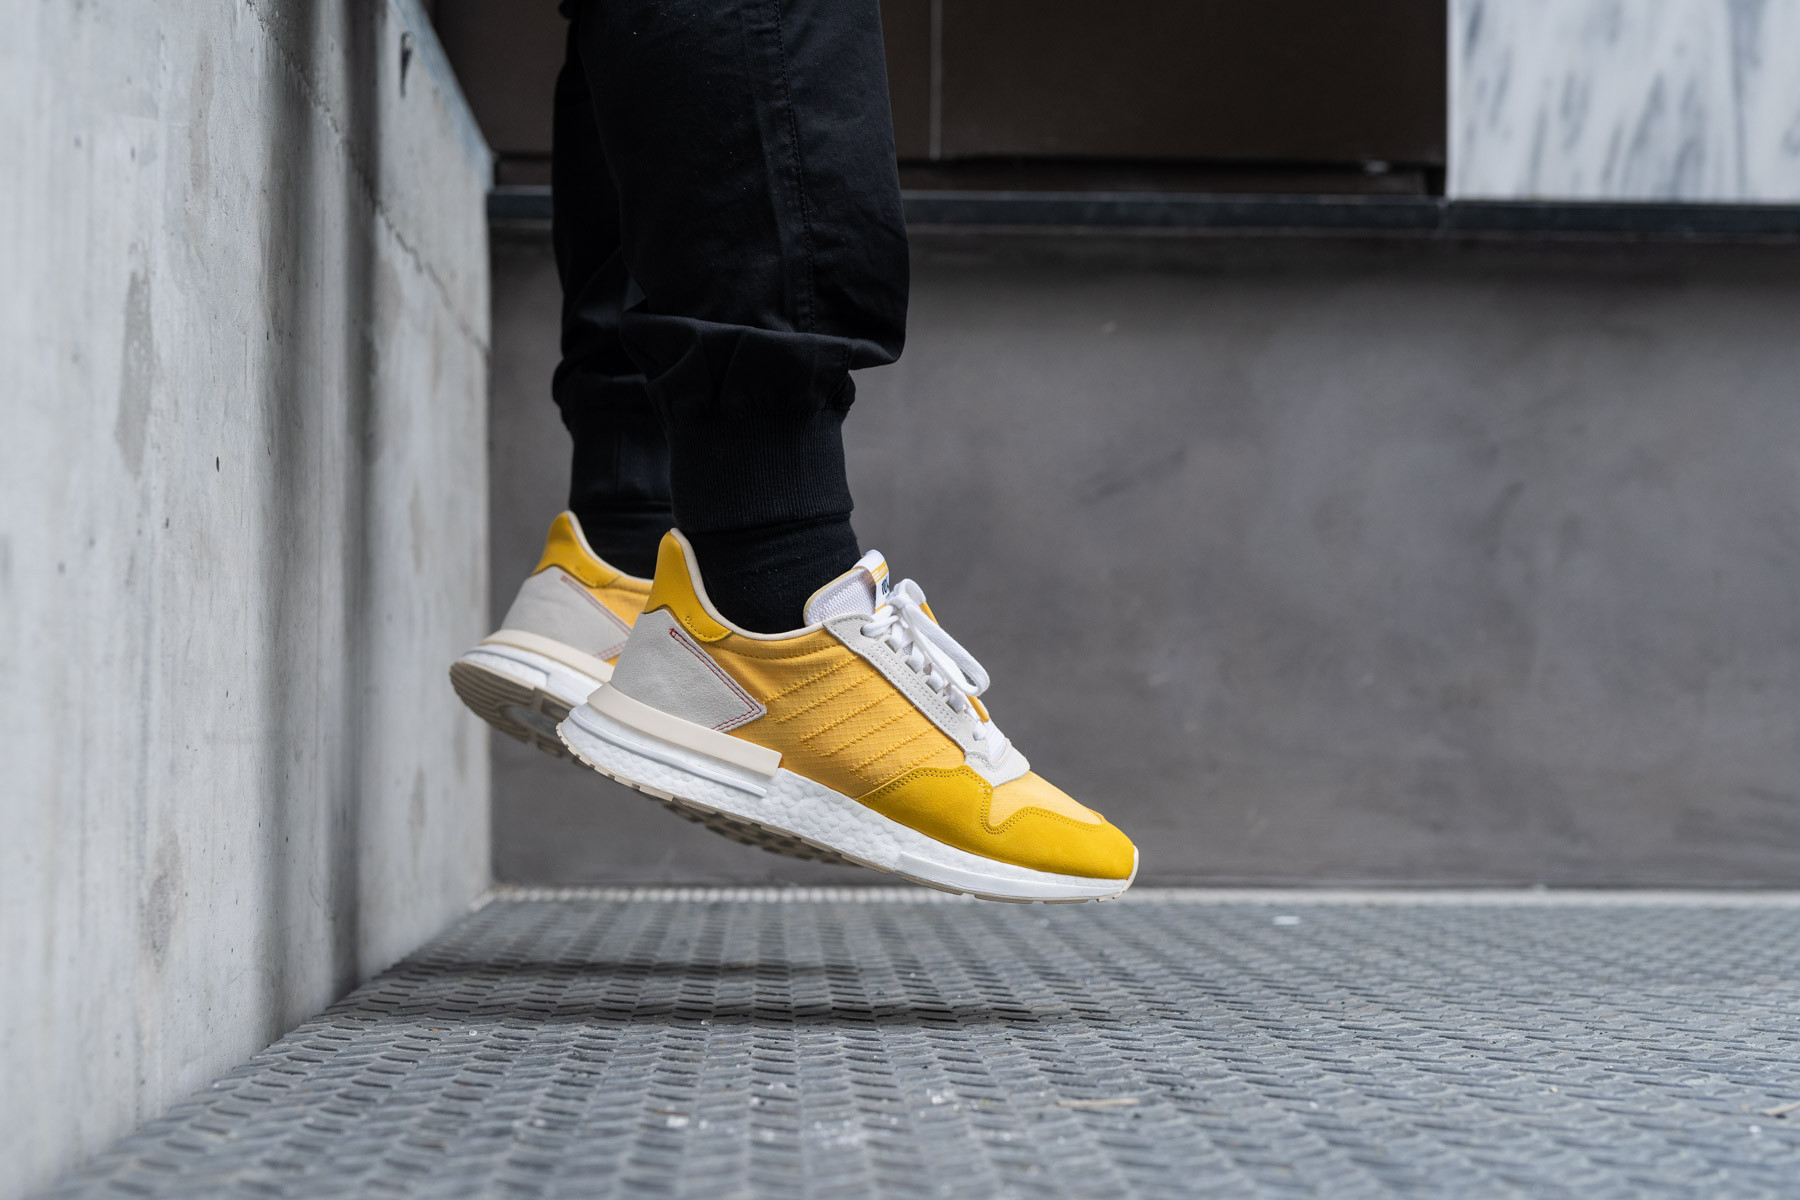 Adidas Originals ZX 500 RM yellow sneakers